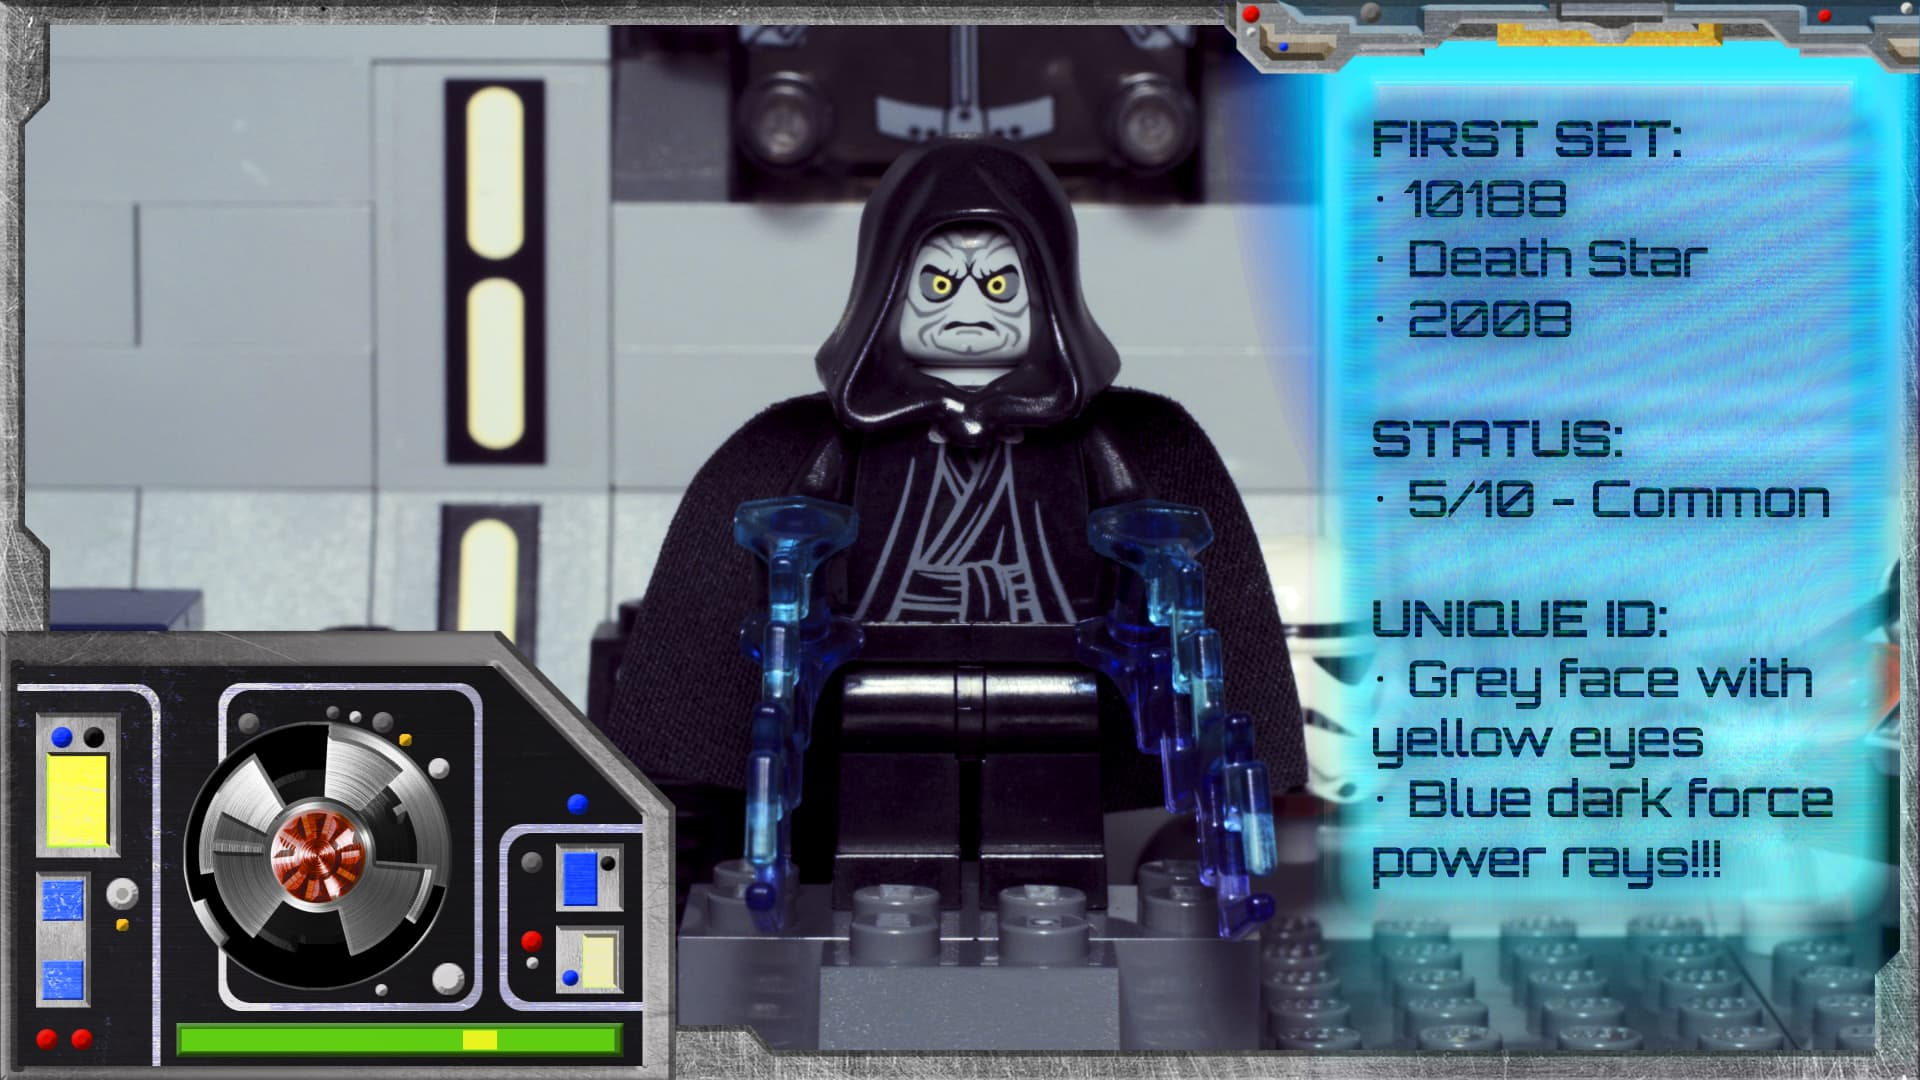 LEGO Star Wars Emperor Palpatine Minifig from set 10188 8096